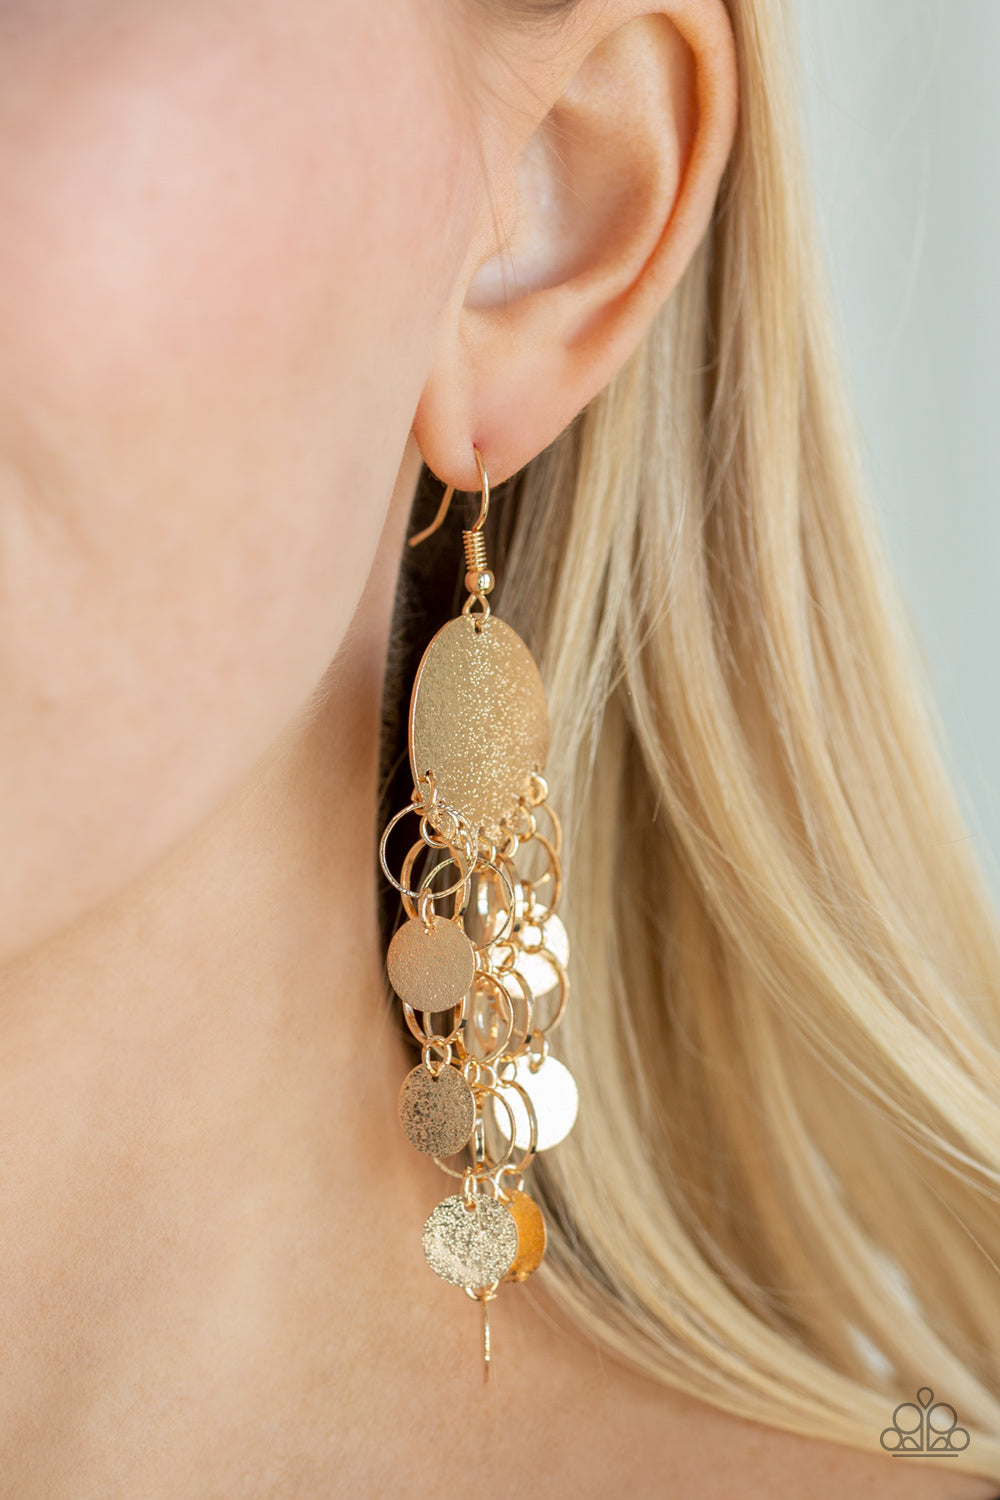 Paparazzi - Turn On The BRIGHTS - Gold Earrings - Classy Jewels by Linda